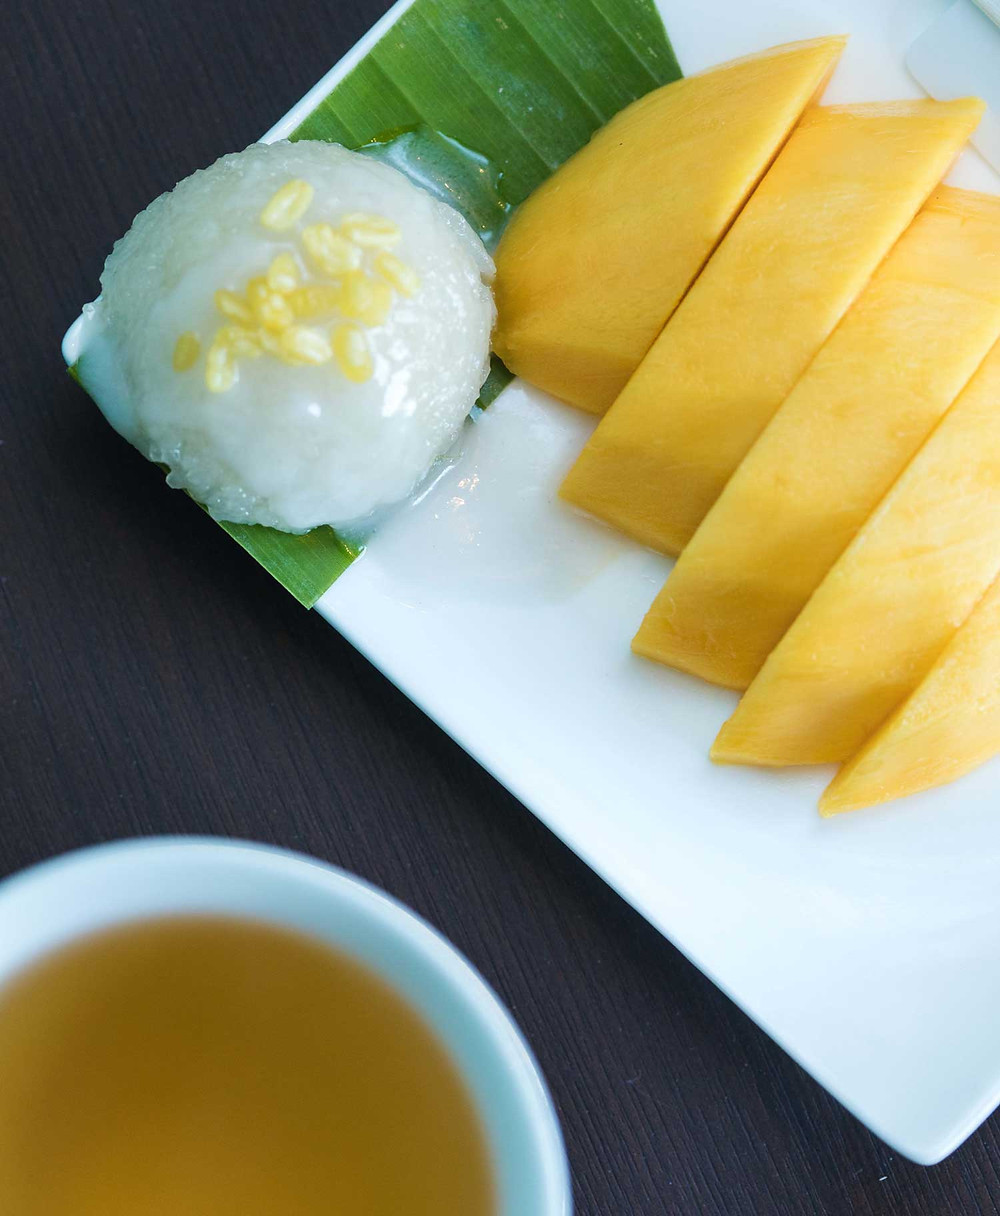 Post-treatment mango-sticky-rice with herbal tea